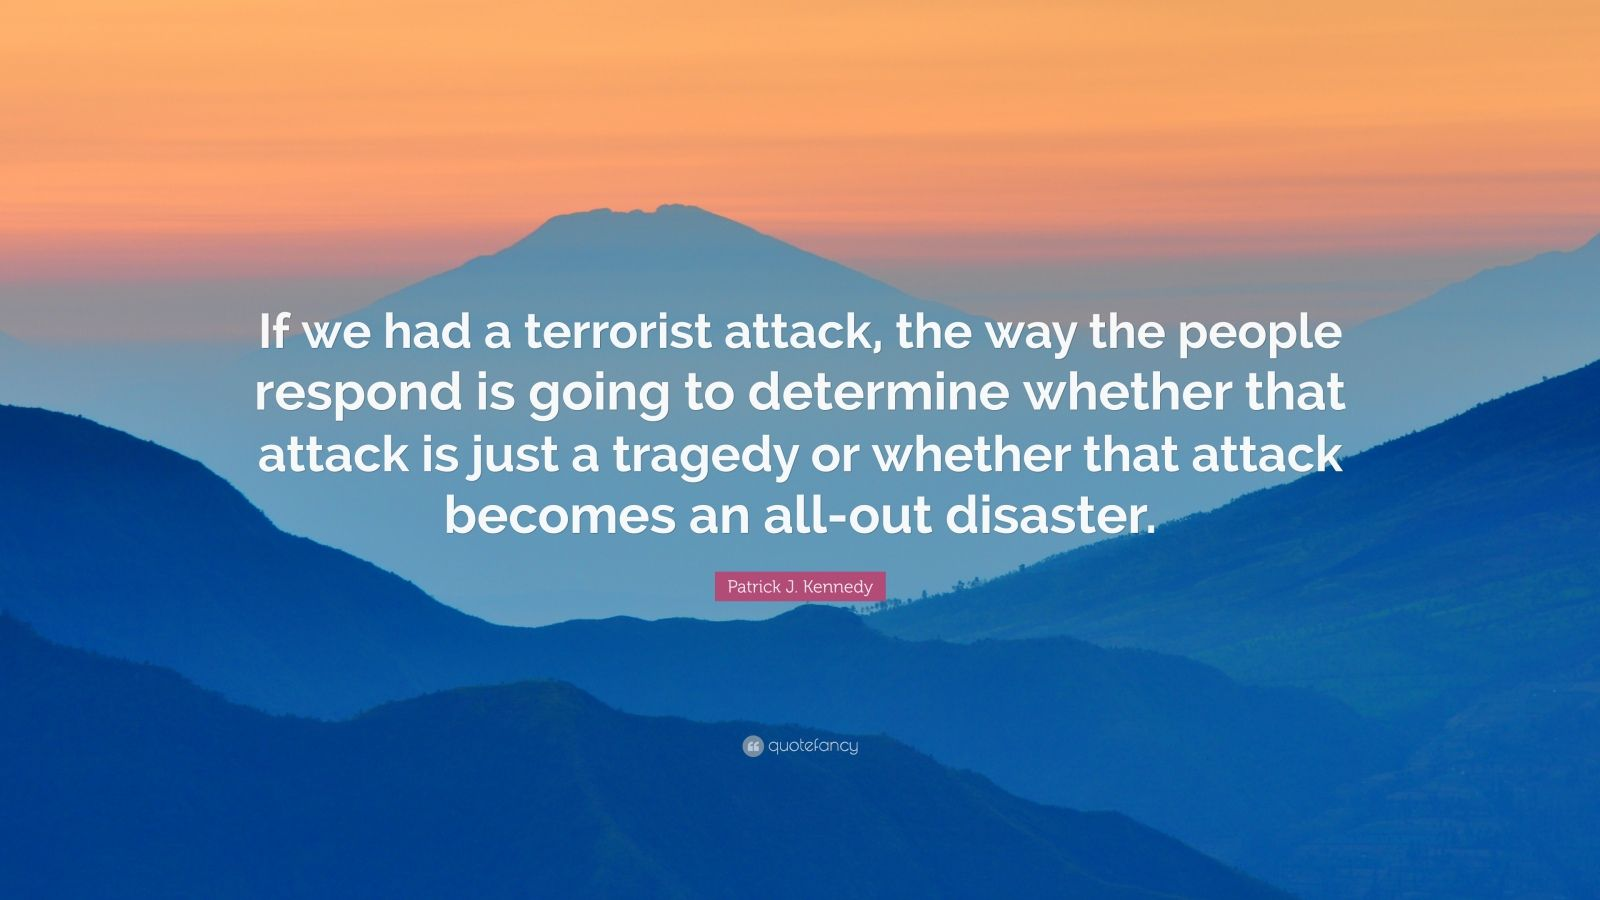 """Patrick J. Kennedy Quote: """"If we had a terrorist attack, the way the people respond is going to determine whether that attack is just a tragedy or whether that attack becomes an all-out disaster."""""""